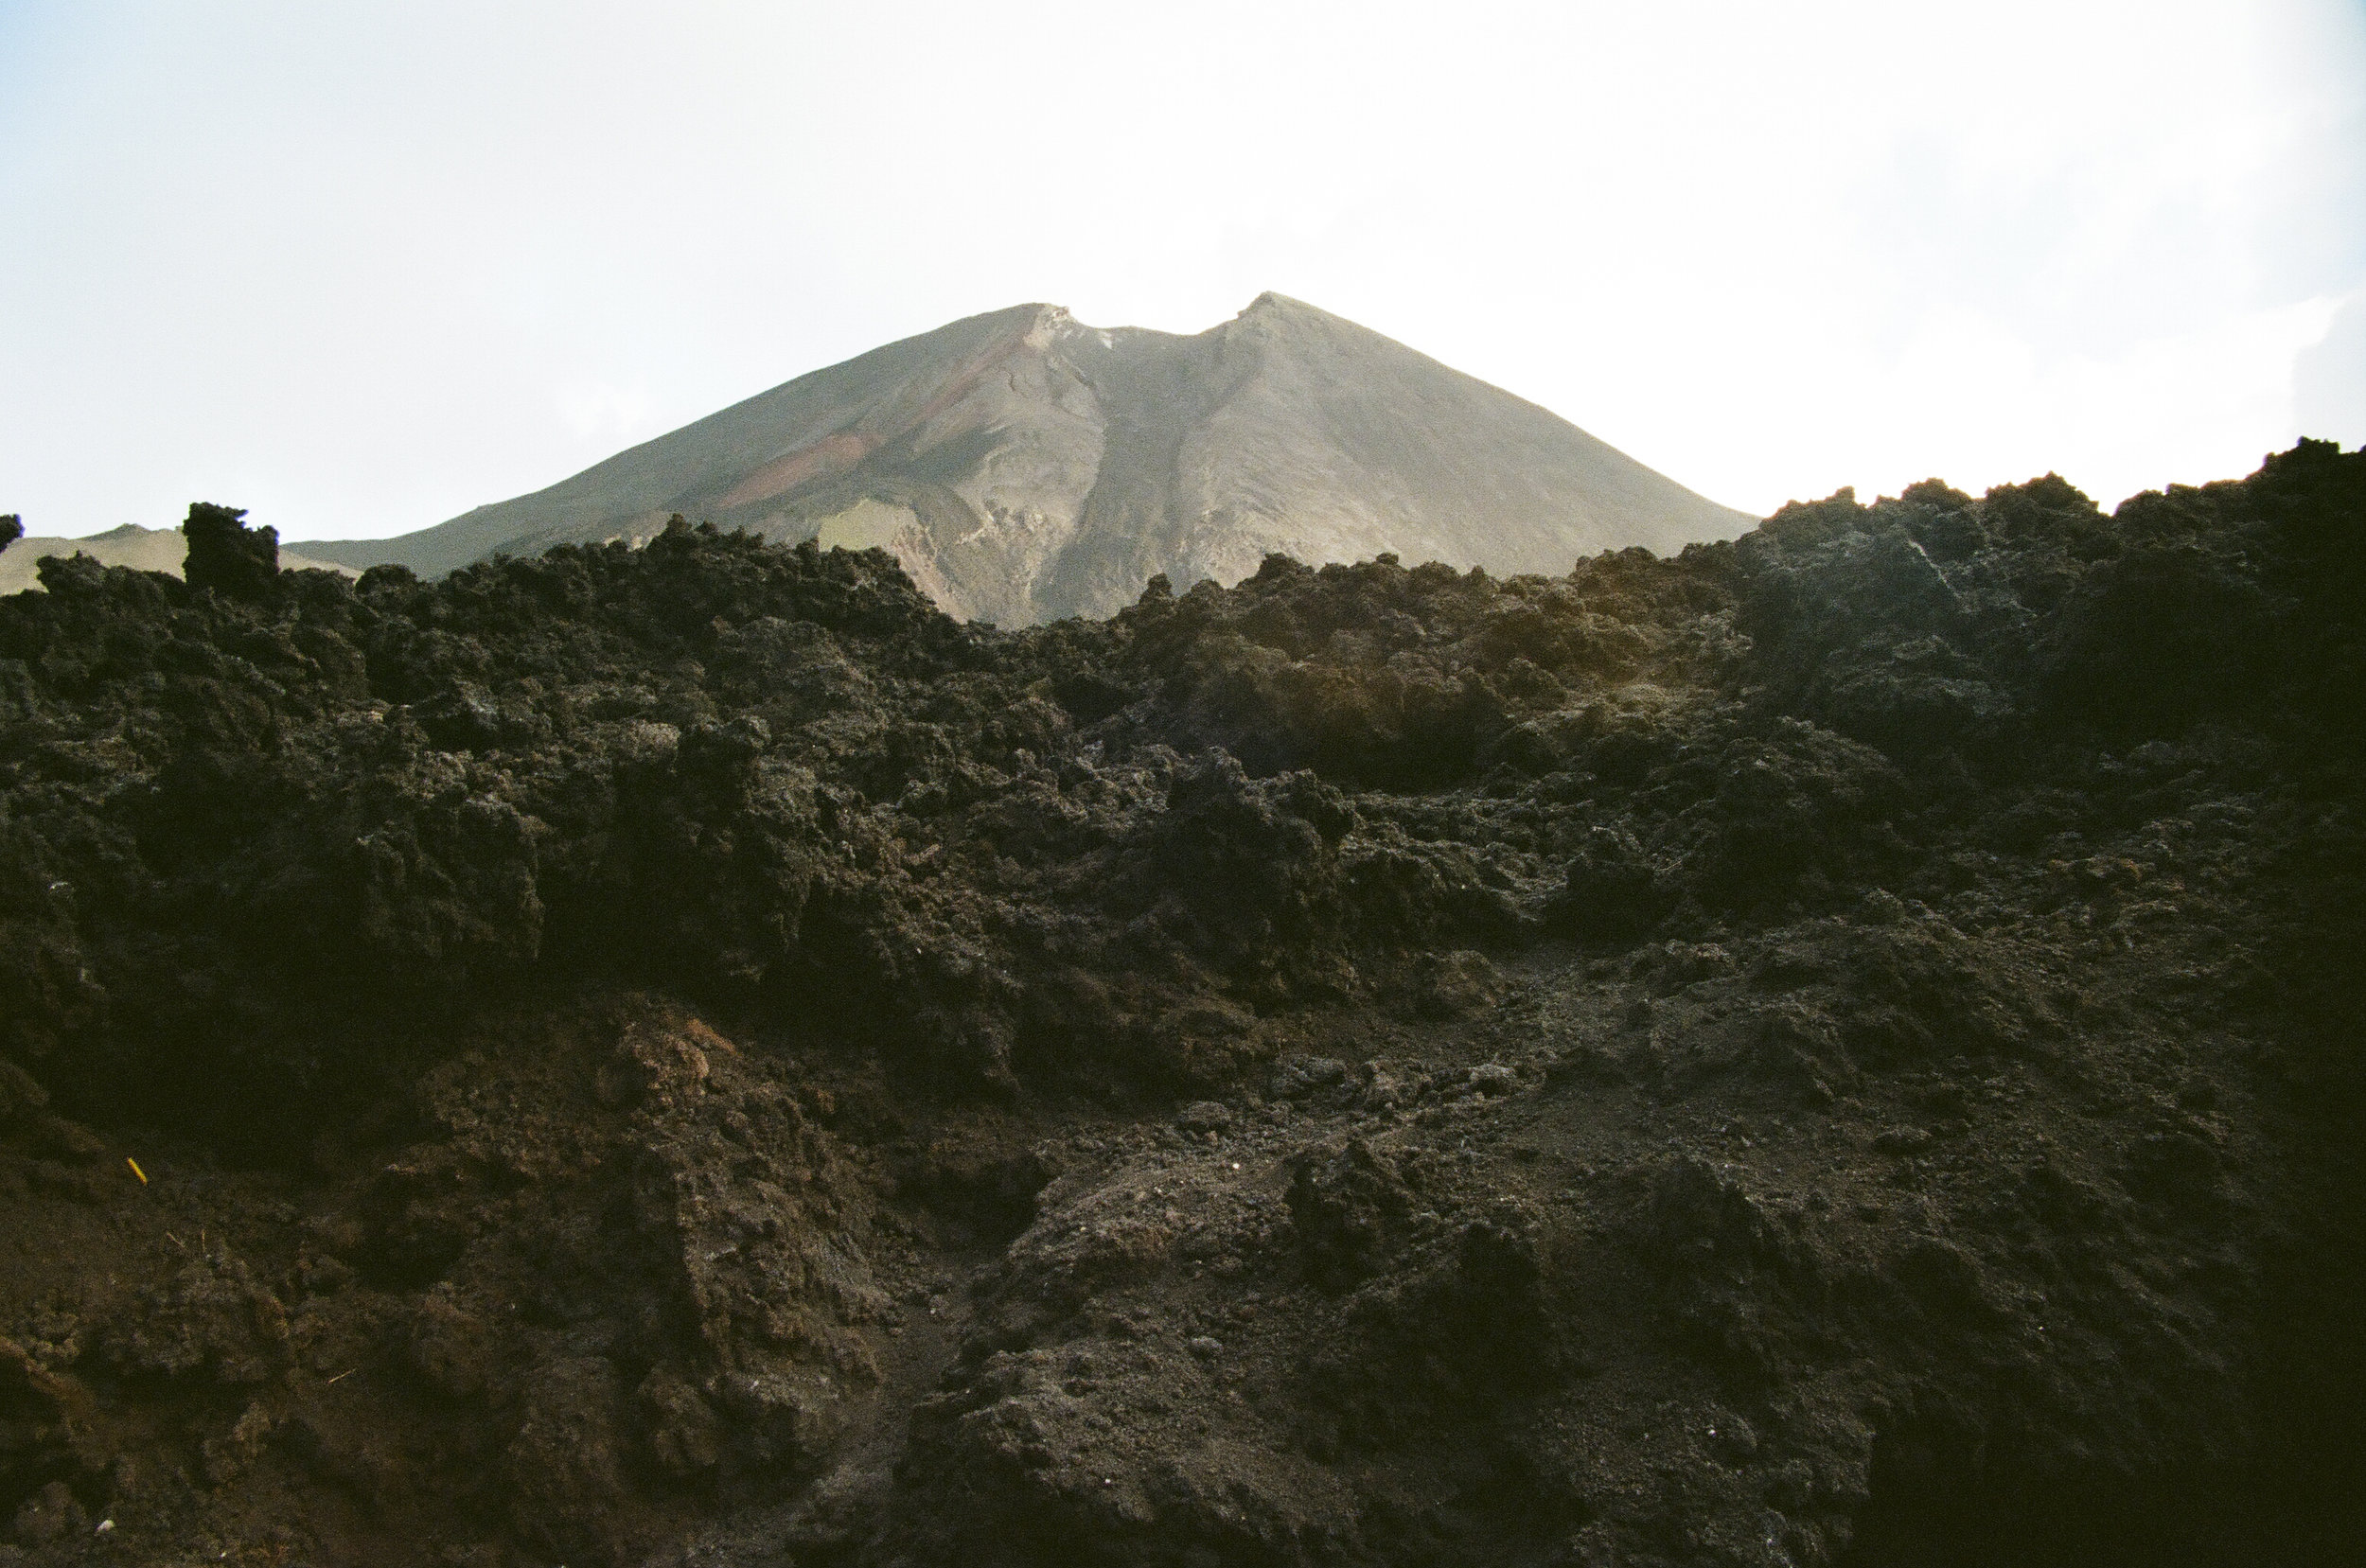 Layers of lava rock